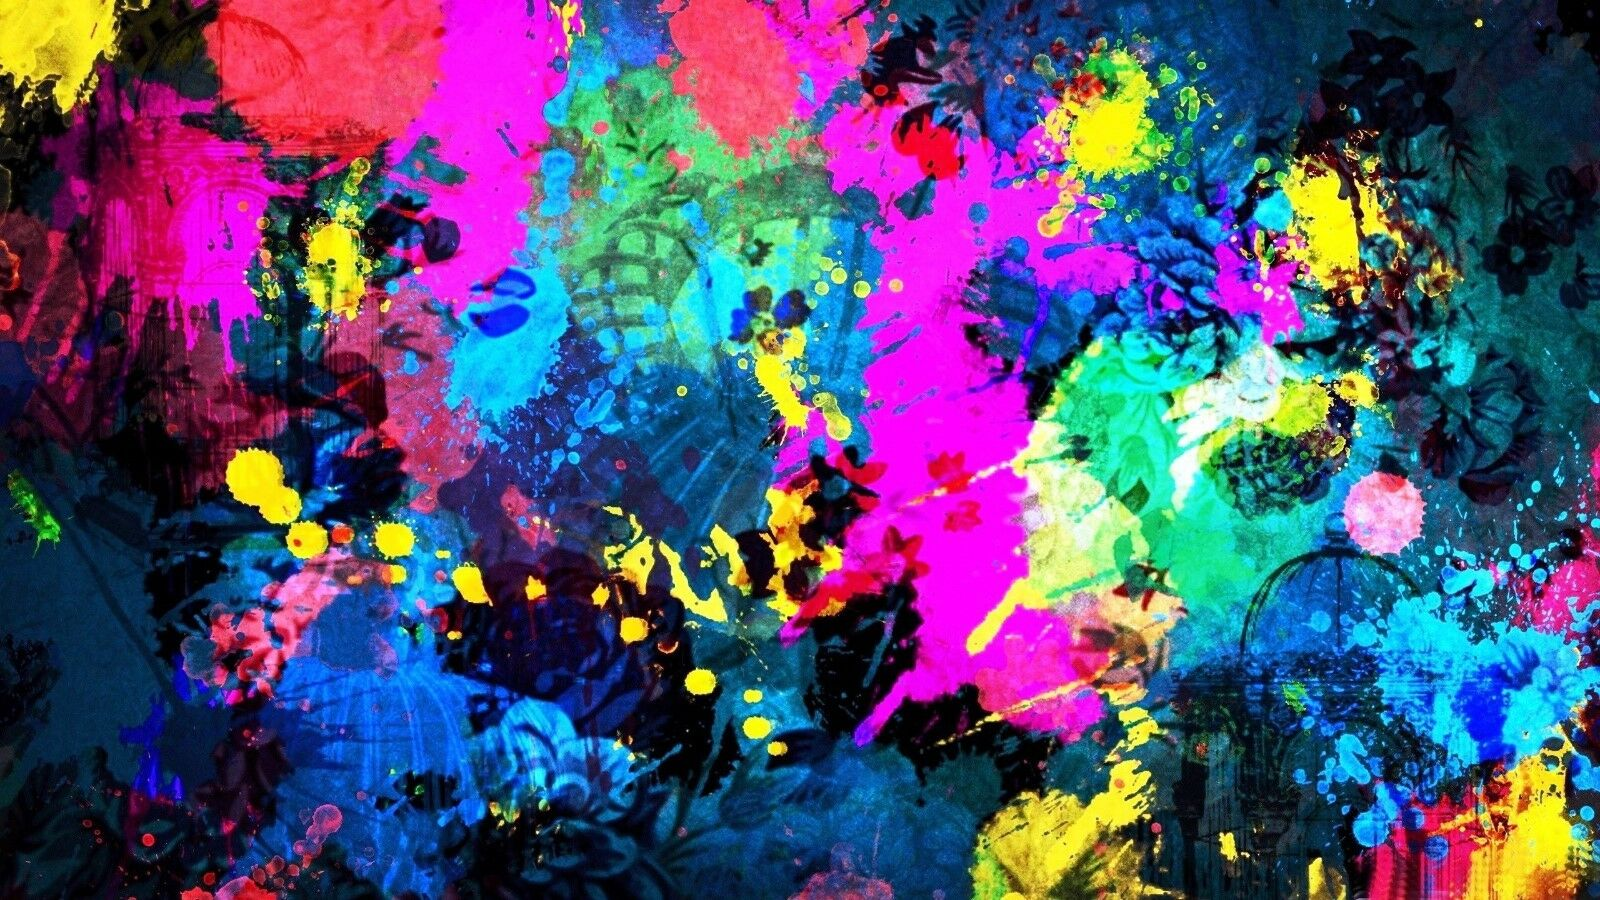 Best Abstract Art Painitng Farbeful High Quality Canvas home wall art & Decor